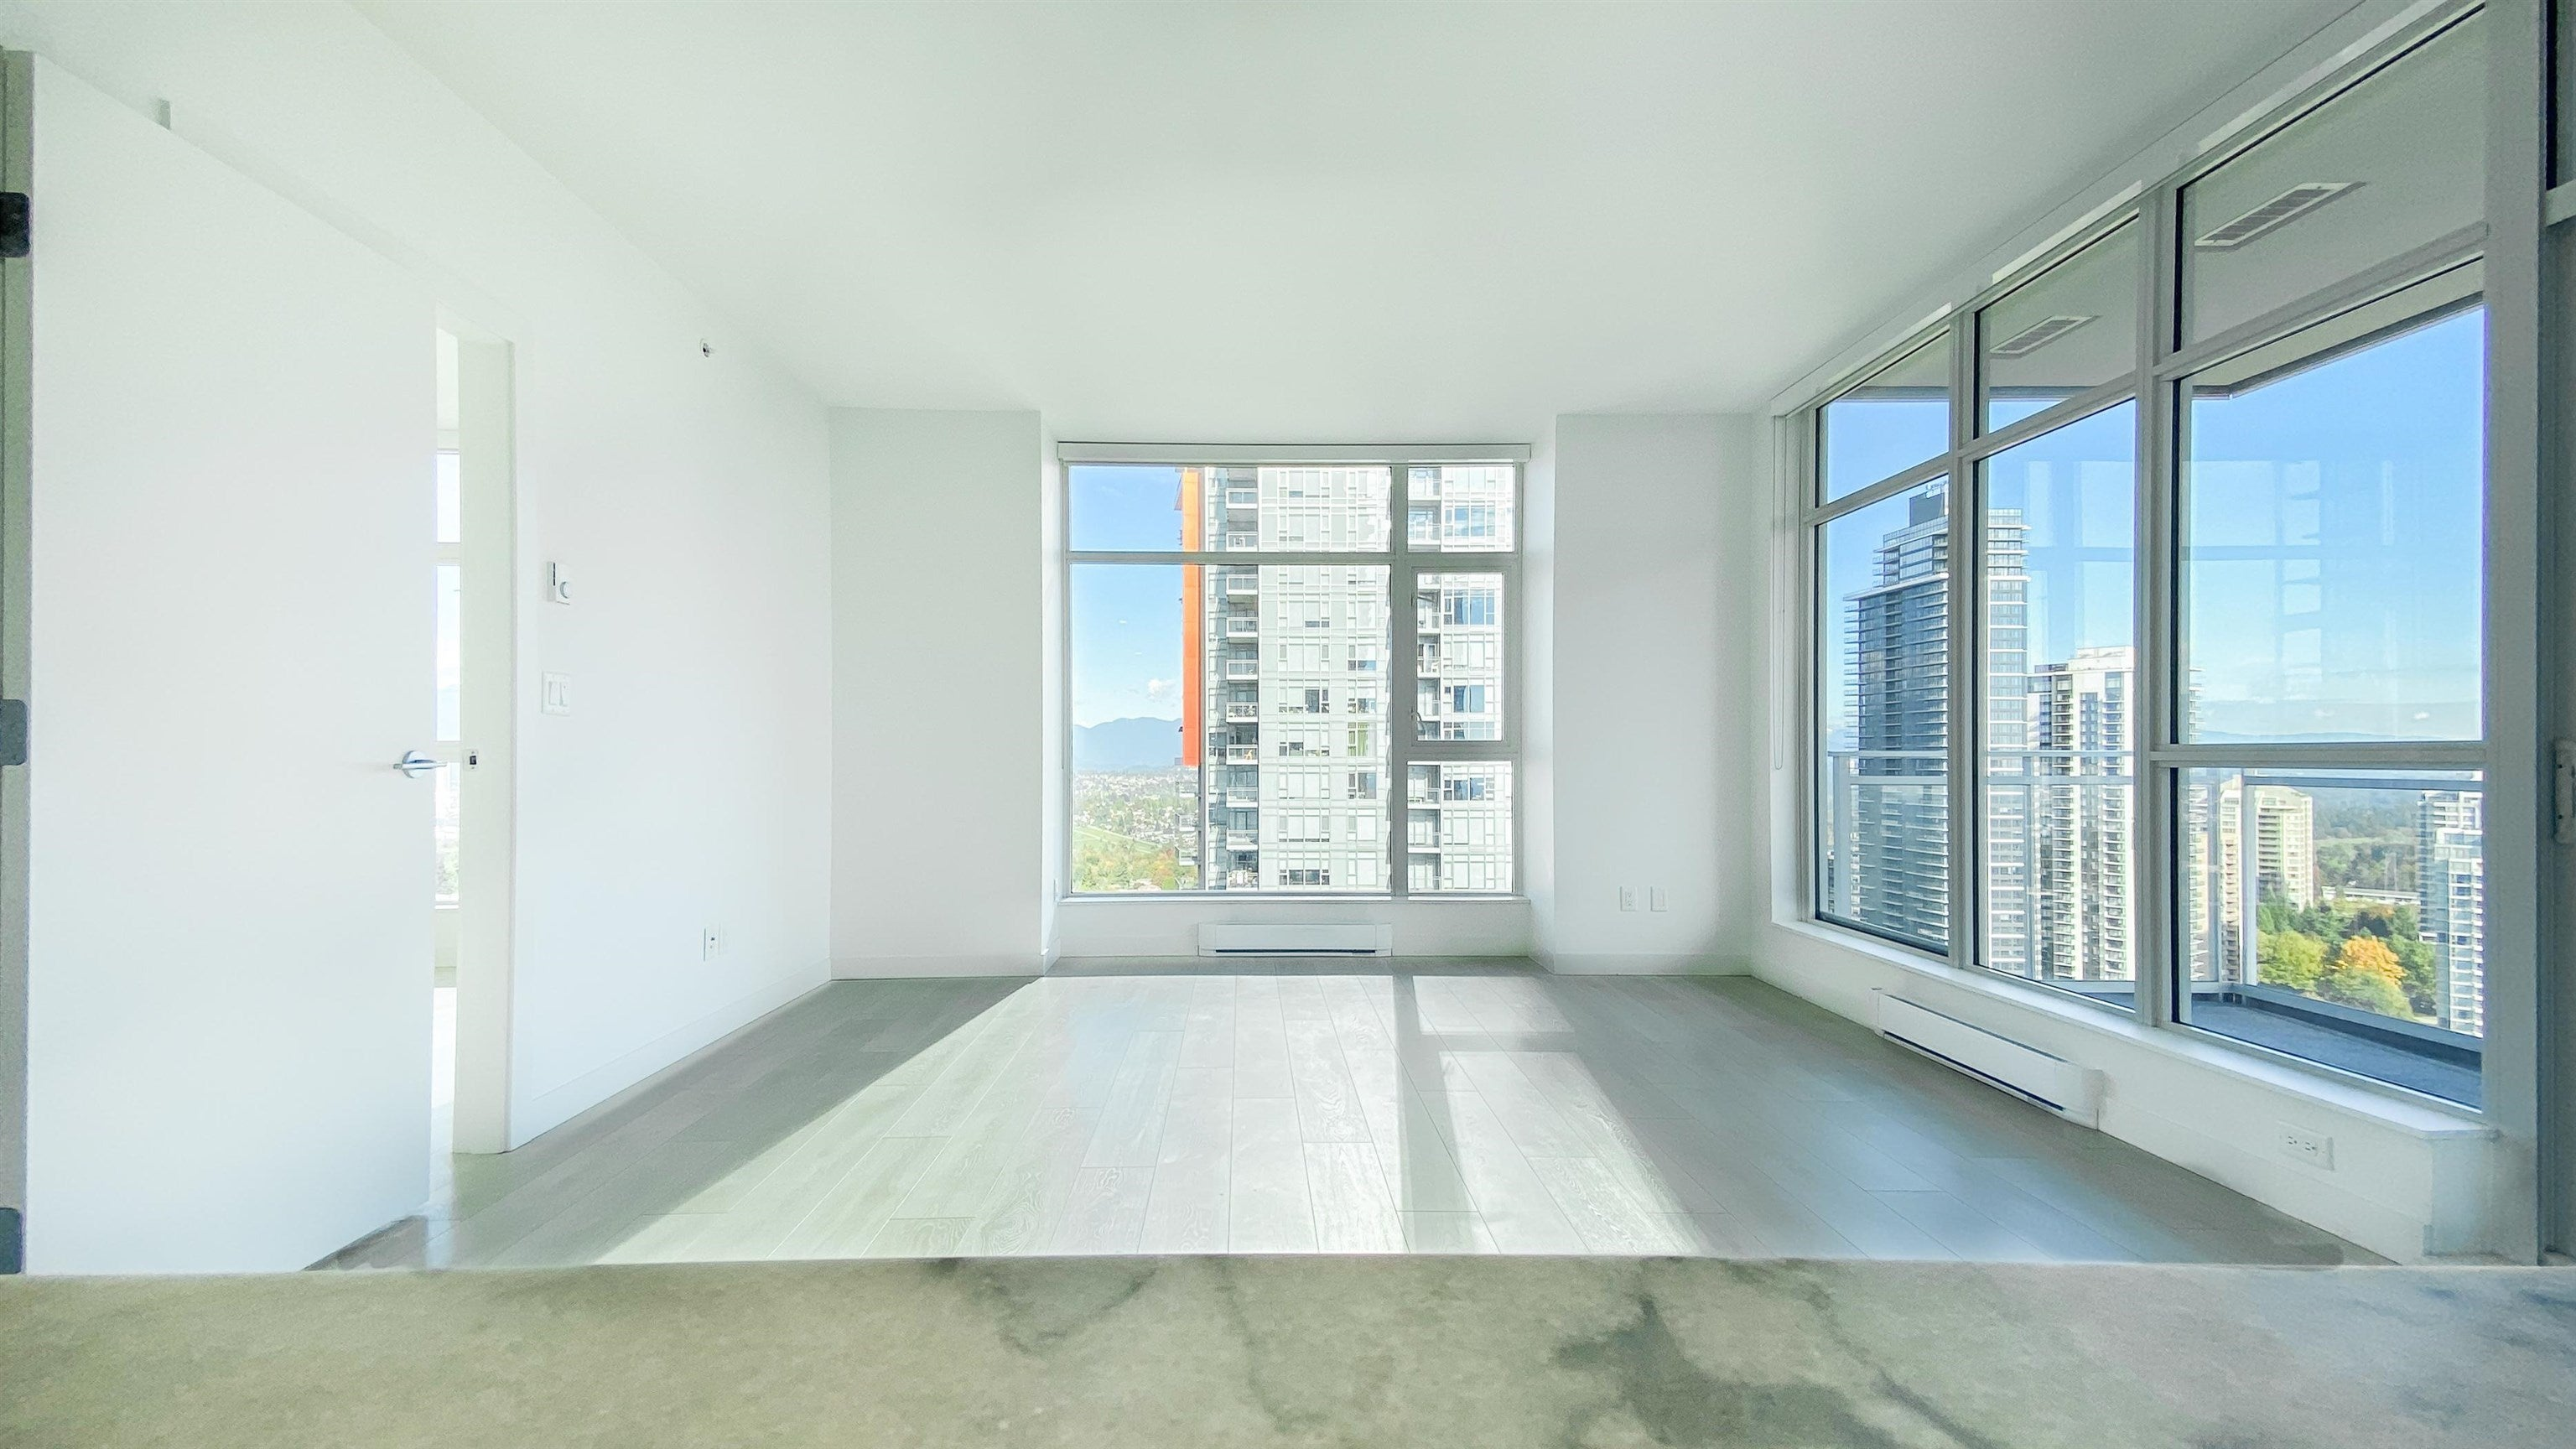 2510 4670 ASSEMBLY WAY - Metrotown Apartment/Condo for sale, 2 Bedrooms (R2625732) - #6